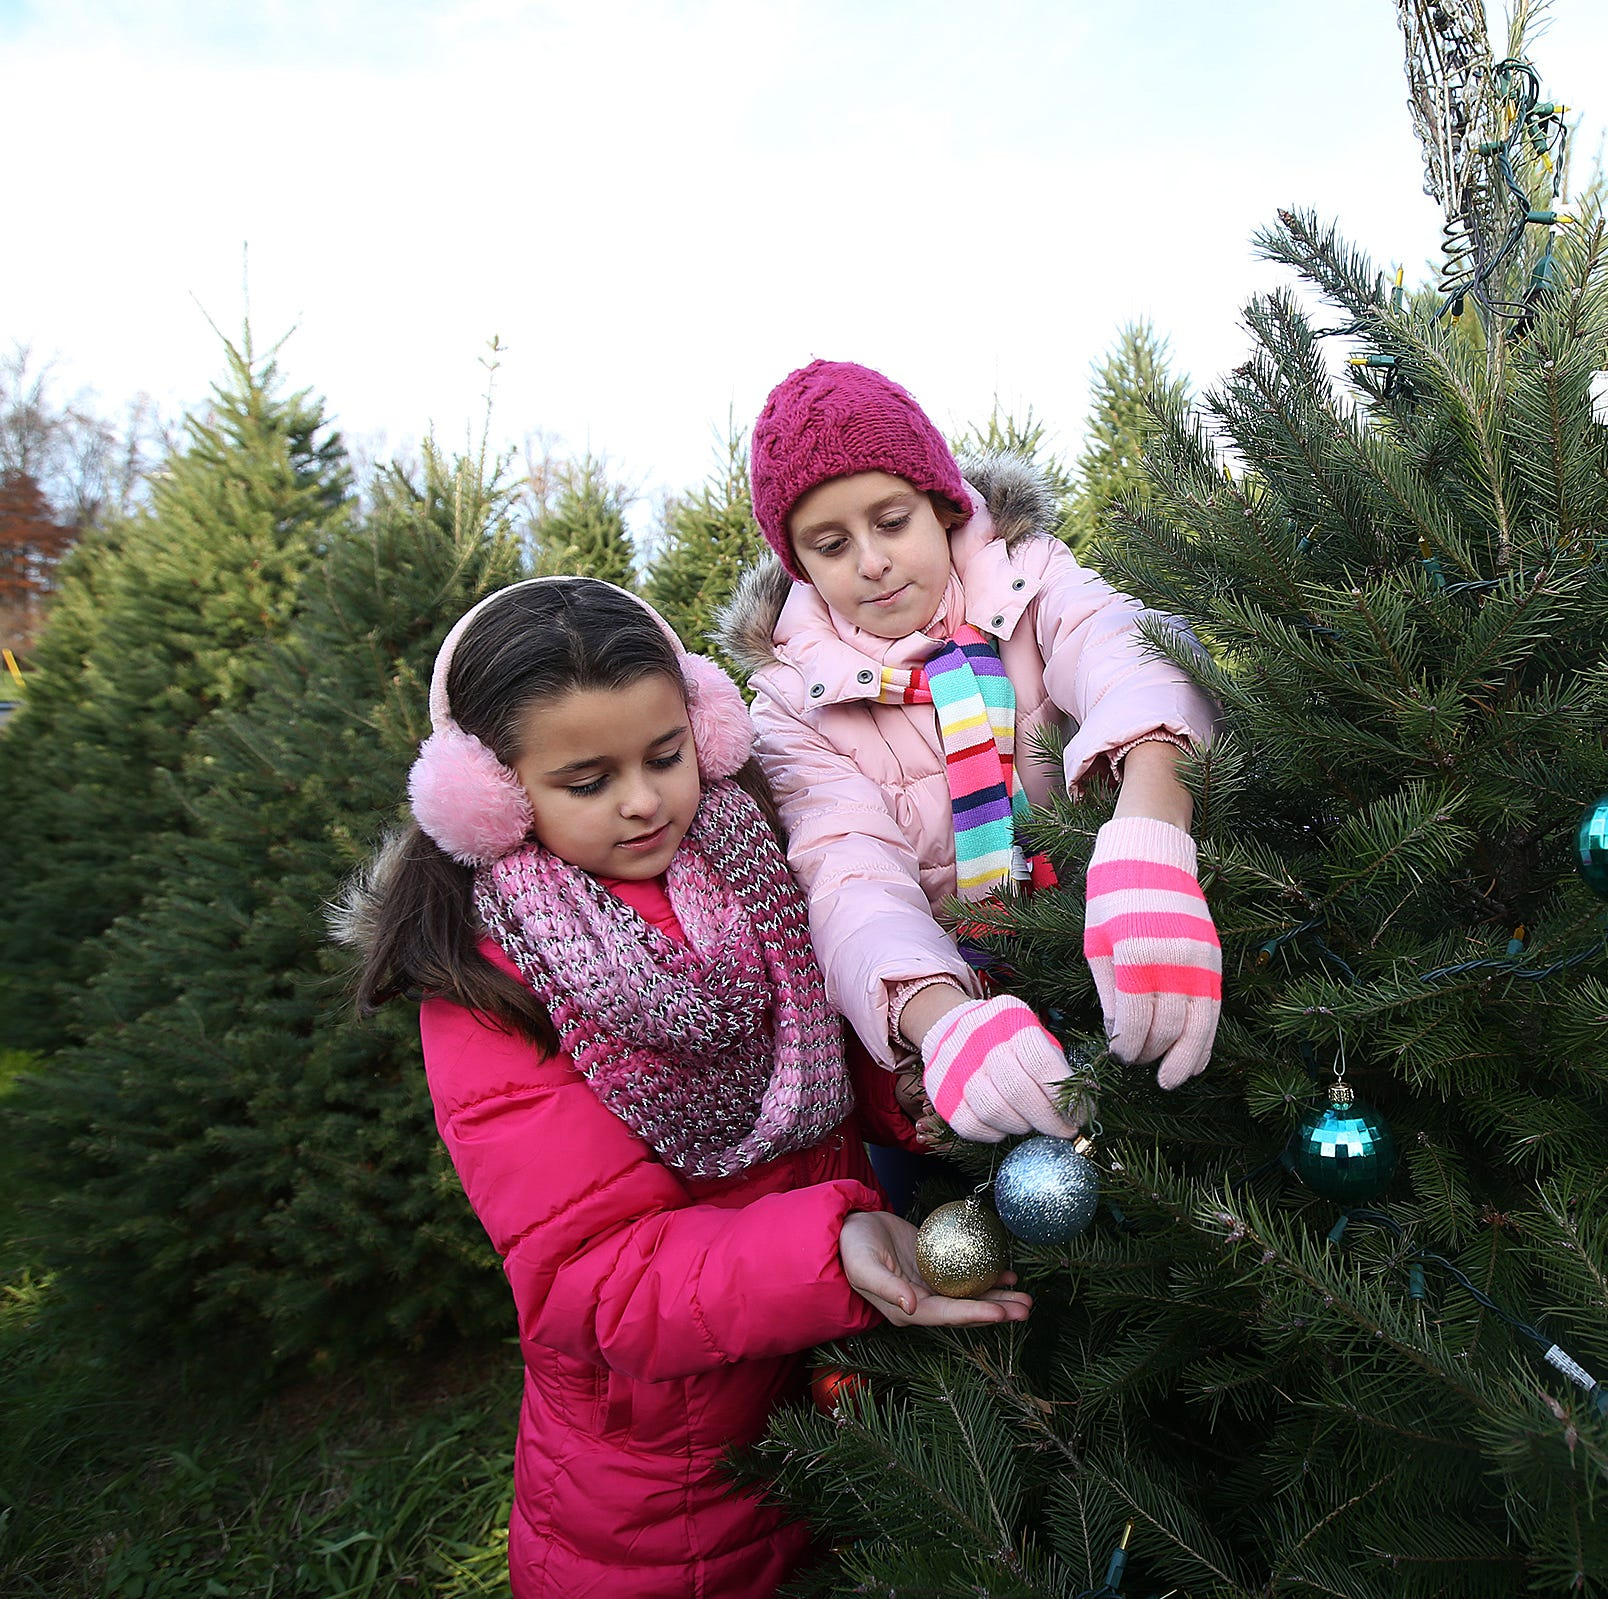 The heartwarming story of two illuminated Christmas trees on a Middletown hillside